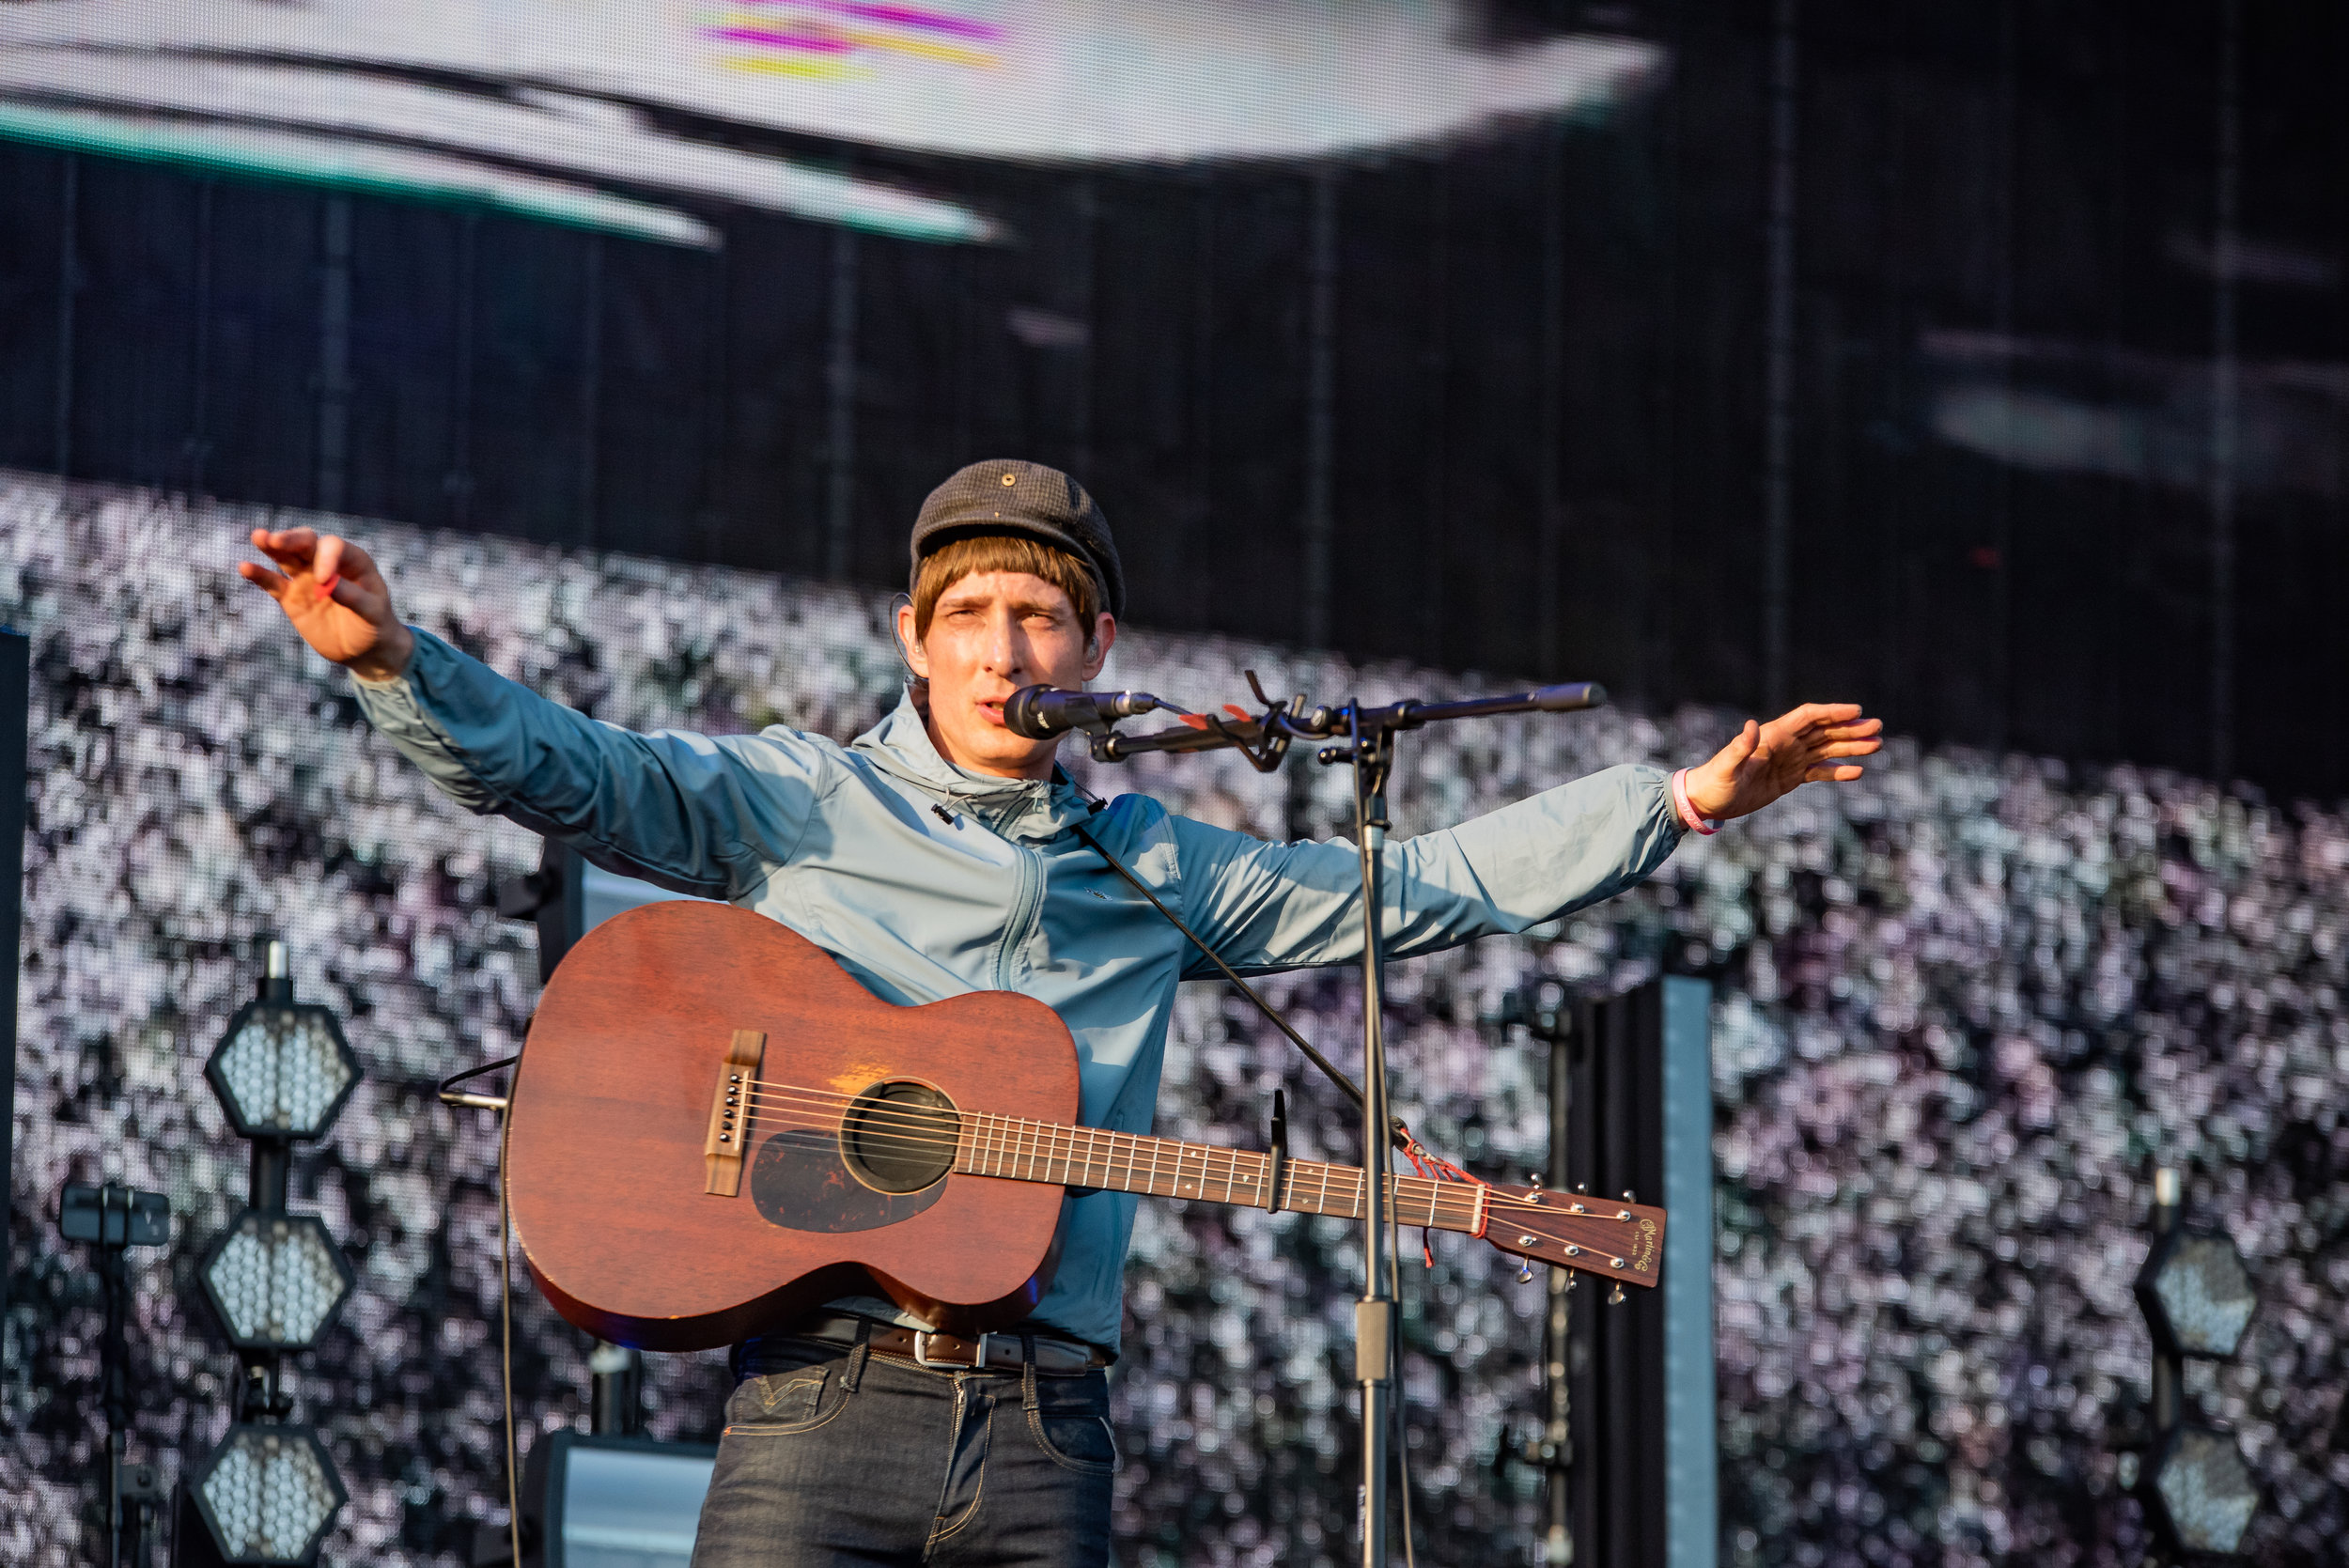 GERRY CINNAMON PERFORMING AT TRNSMT FESTIVAL 2019  Picture By: Bazza Mils